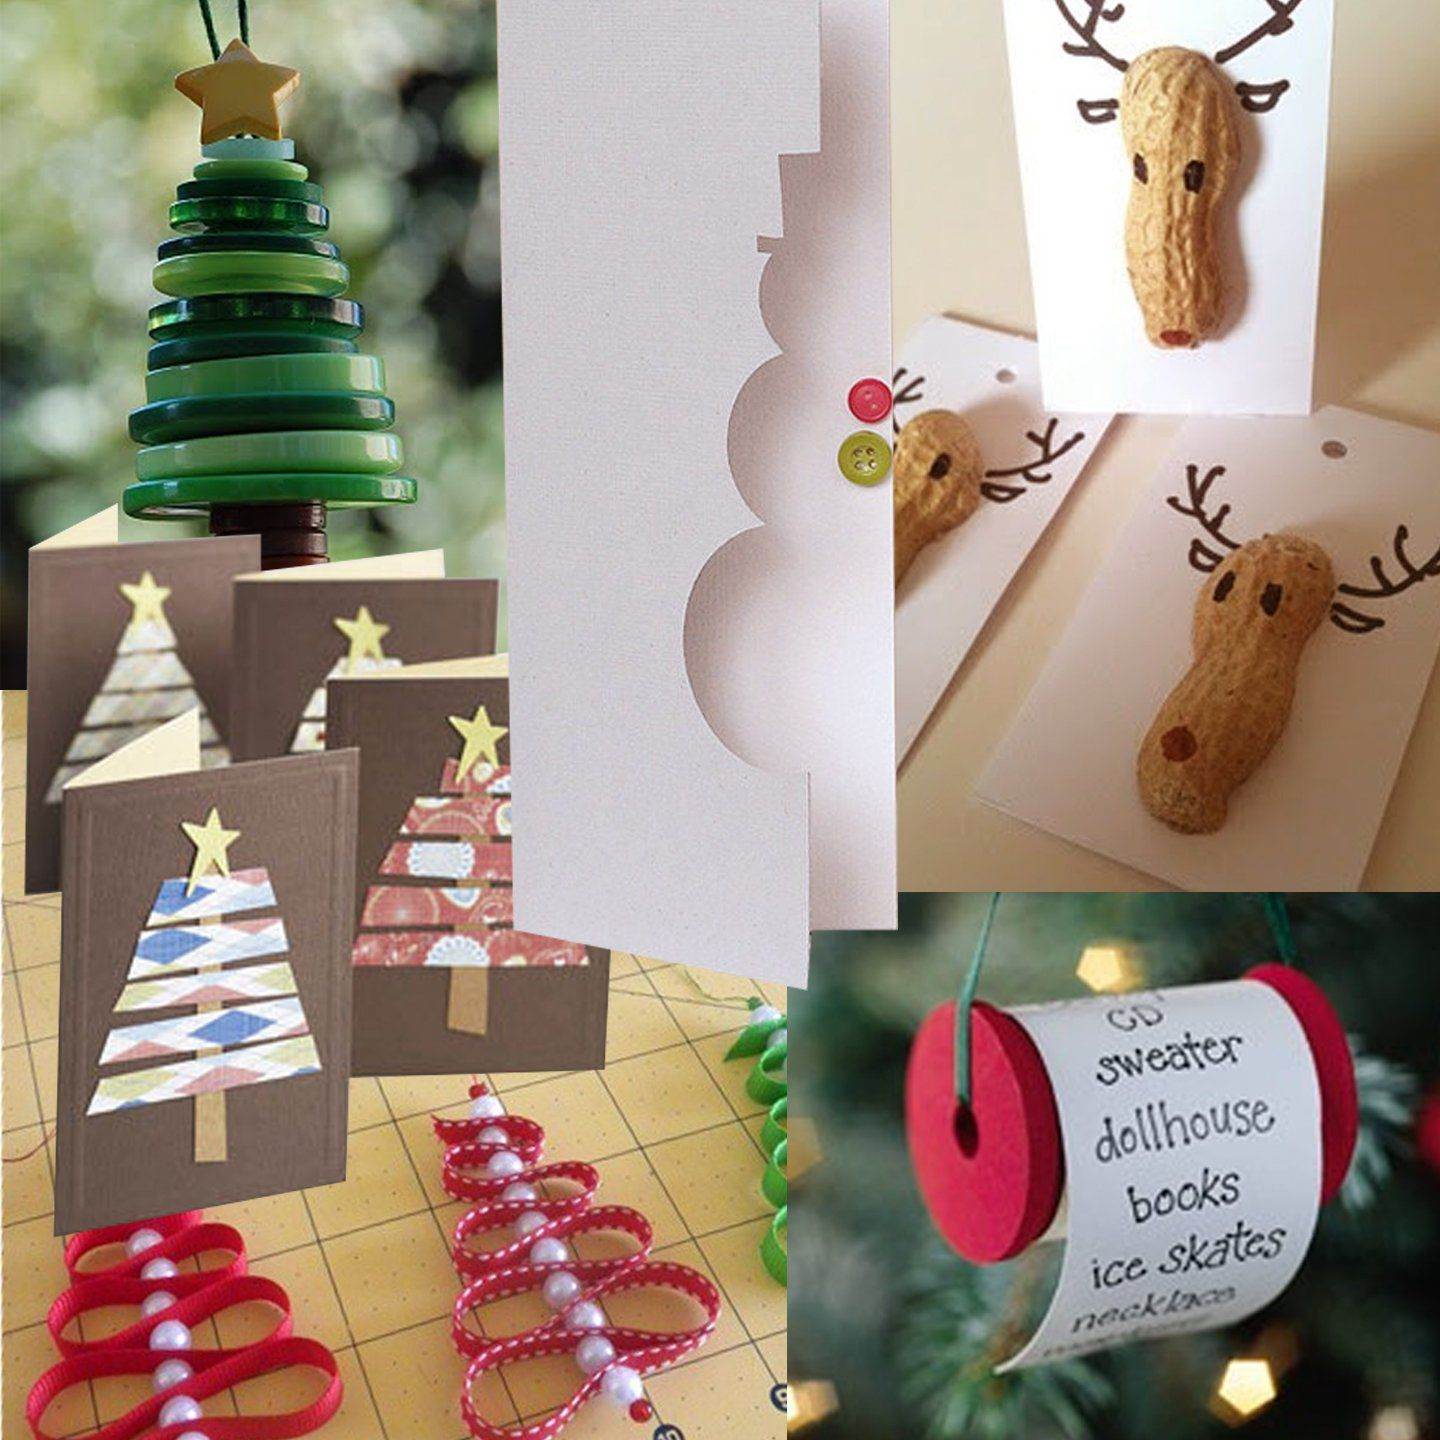 Christmas room ideas diy decorations xmas decorations Christmas decorating diy